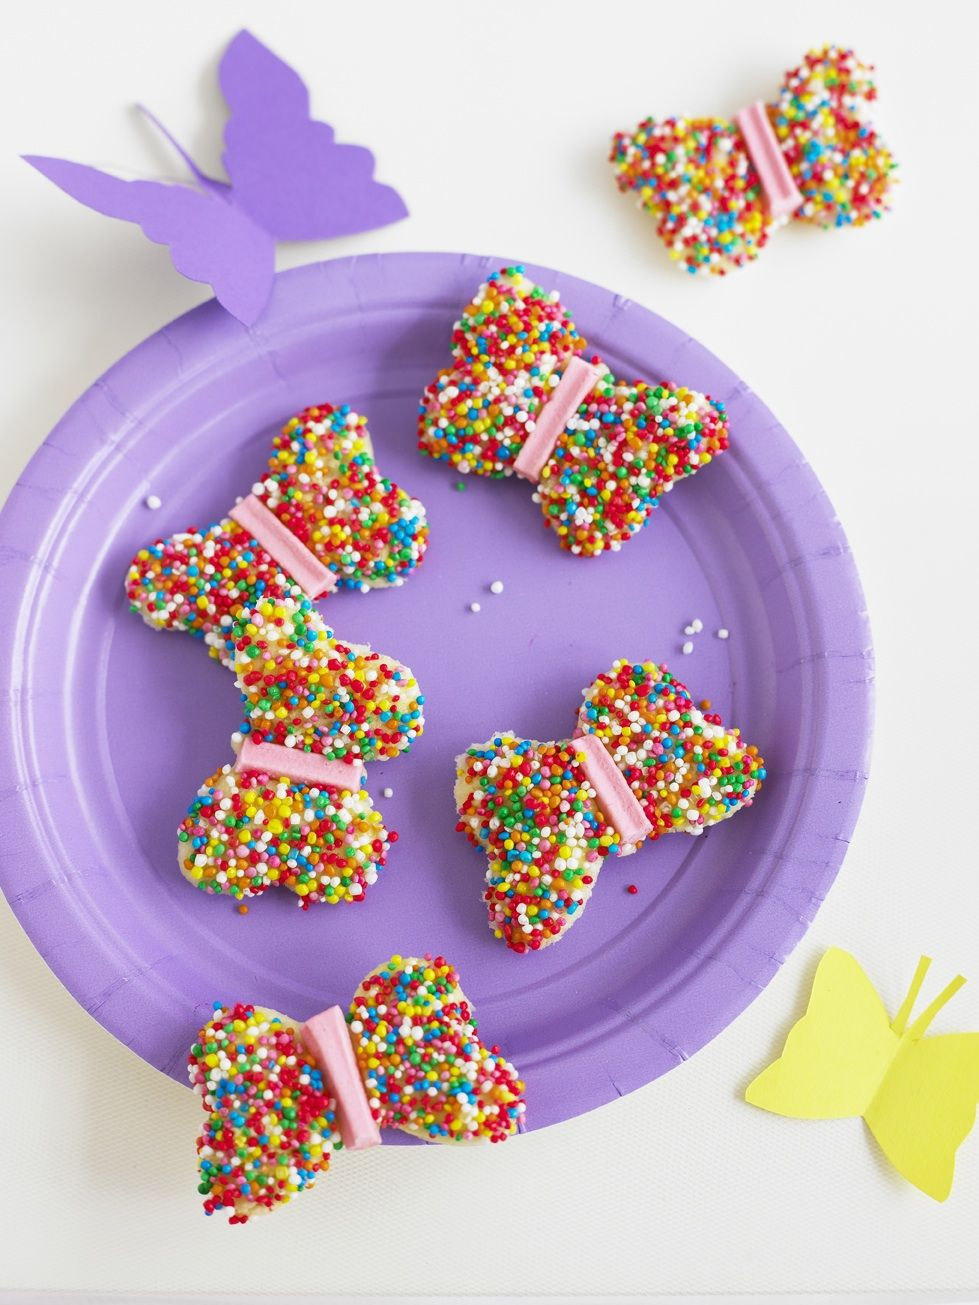 Pix For Butterfly Party Food Ideas Luca mariposa Pinterest